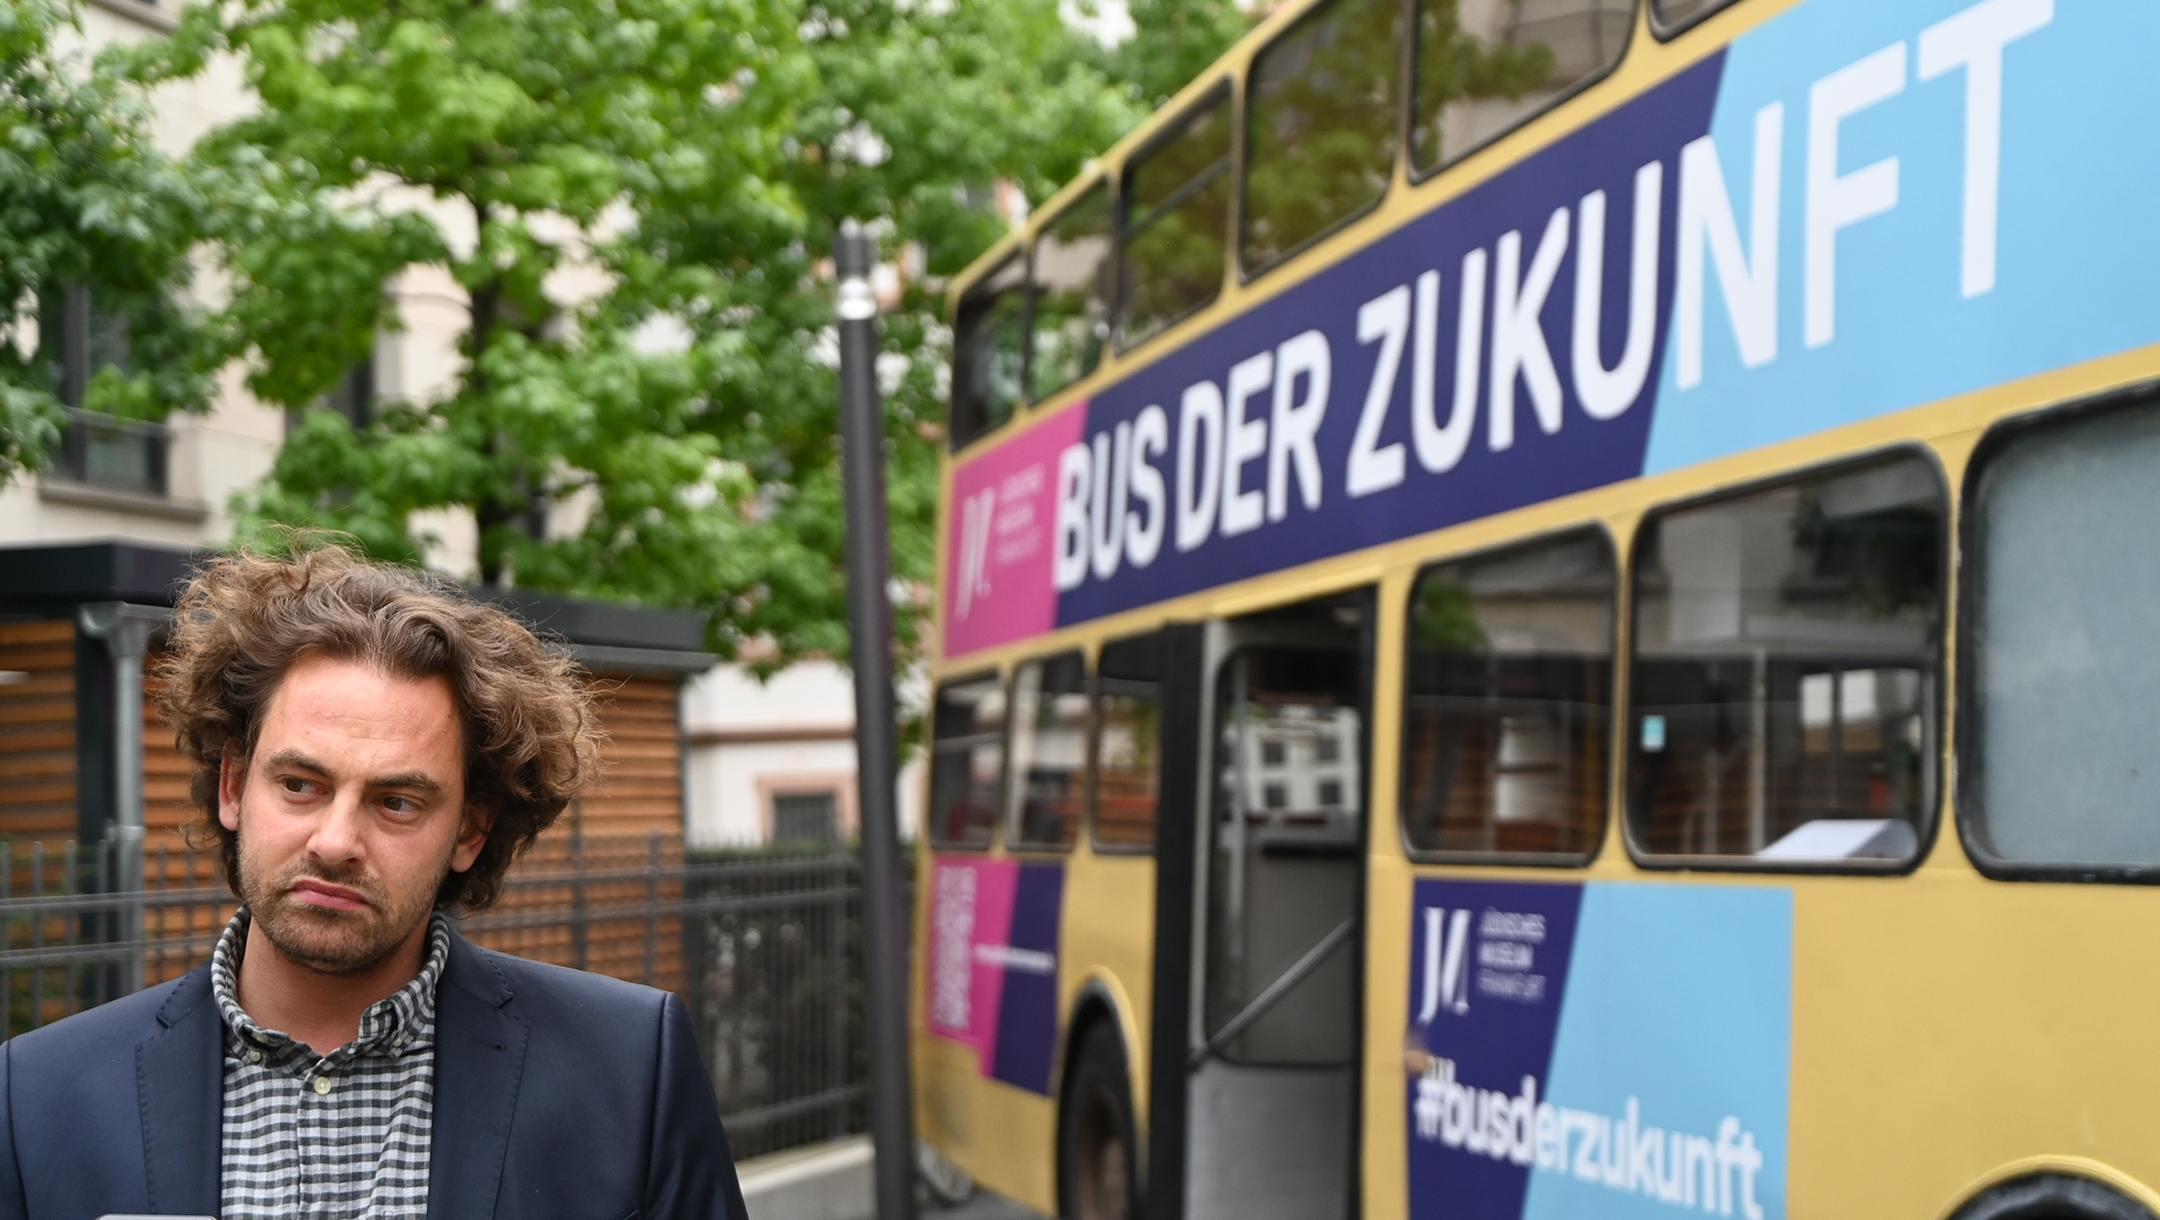 Shai Hoffman explains about his Bus of Encounters project in Frankfurt, Germany on Aug. 25, 2020. (Cnaan Liphshiz)